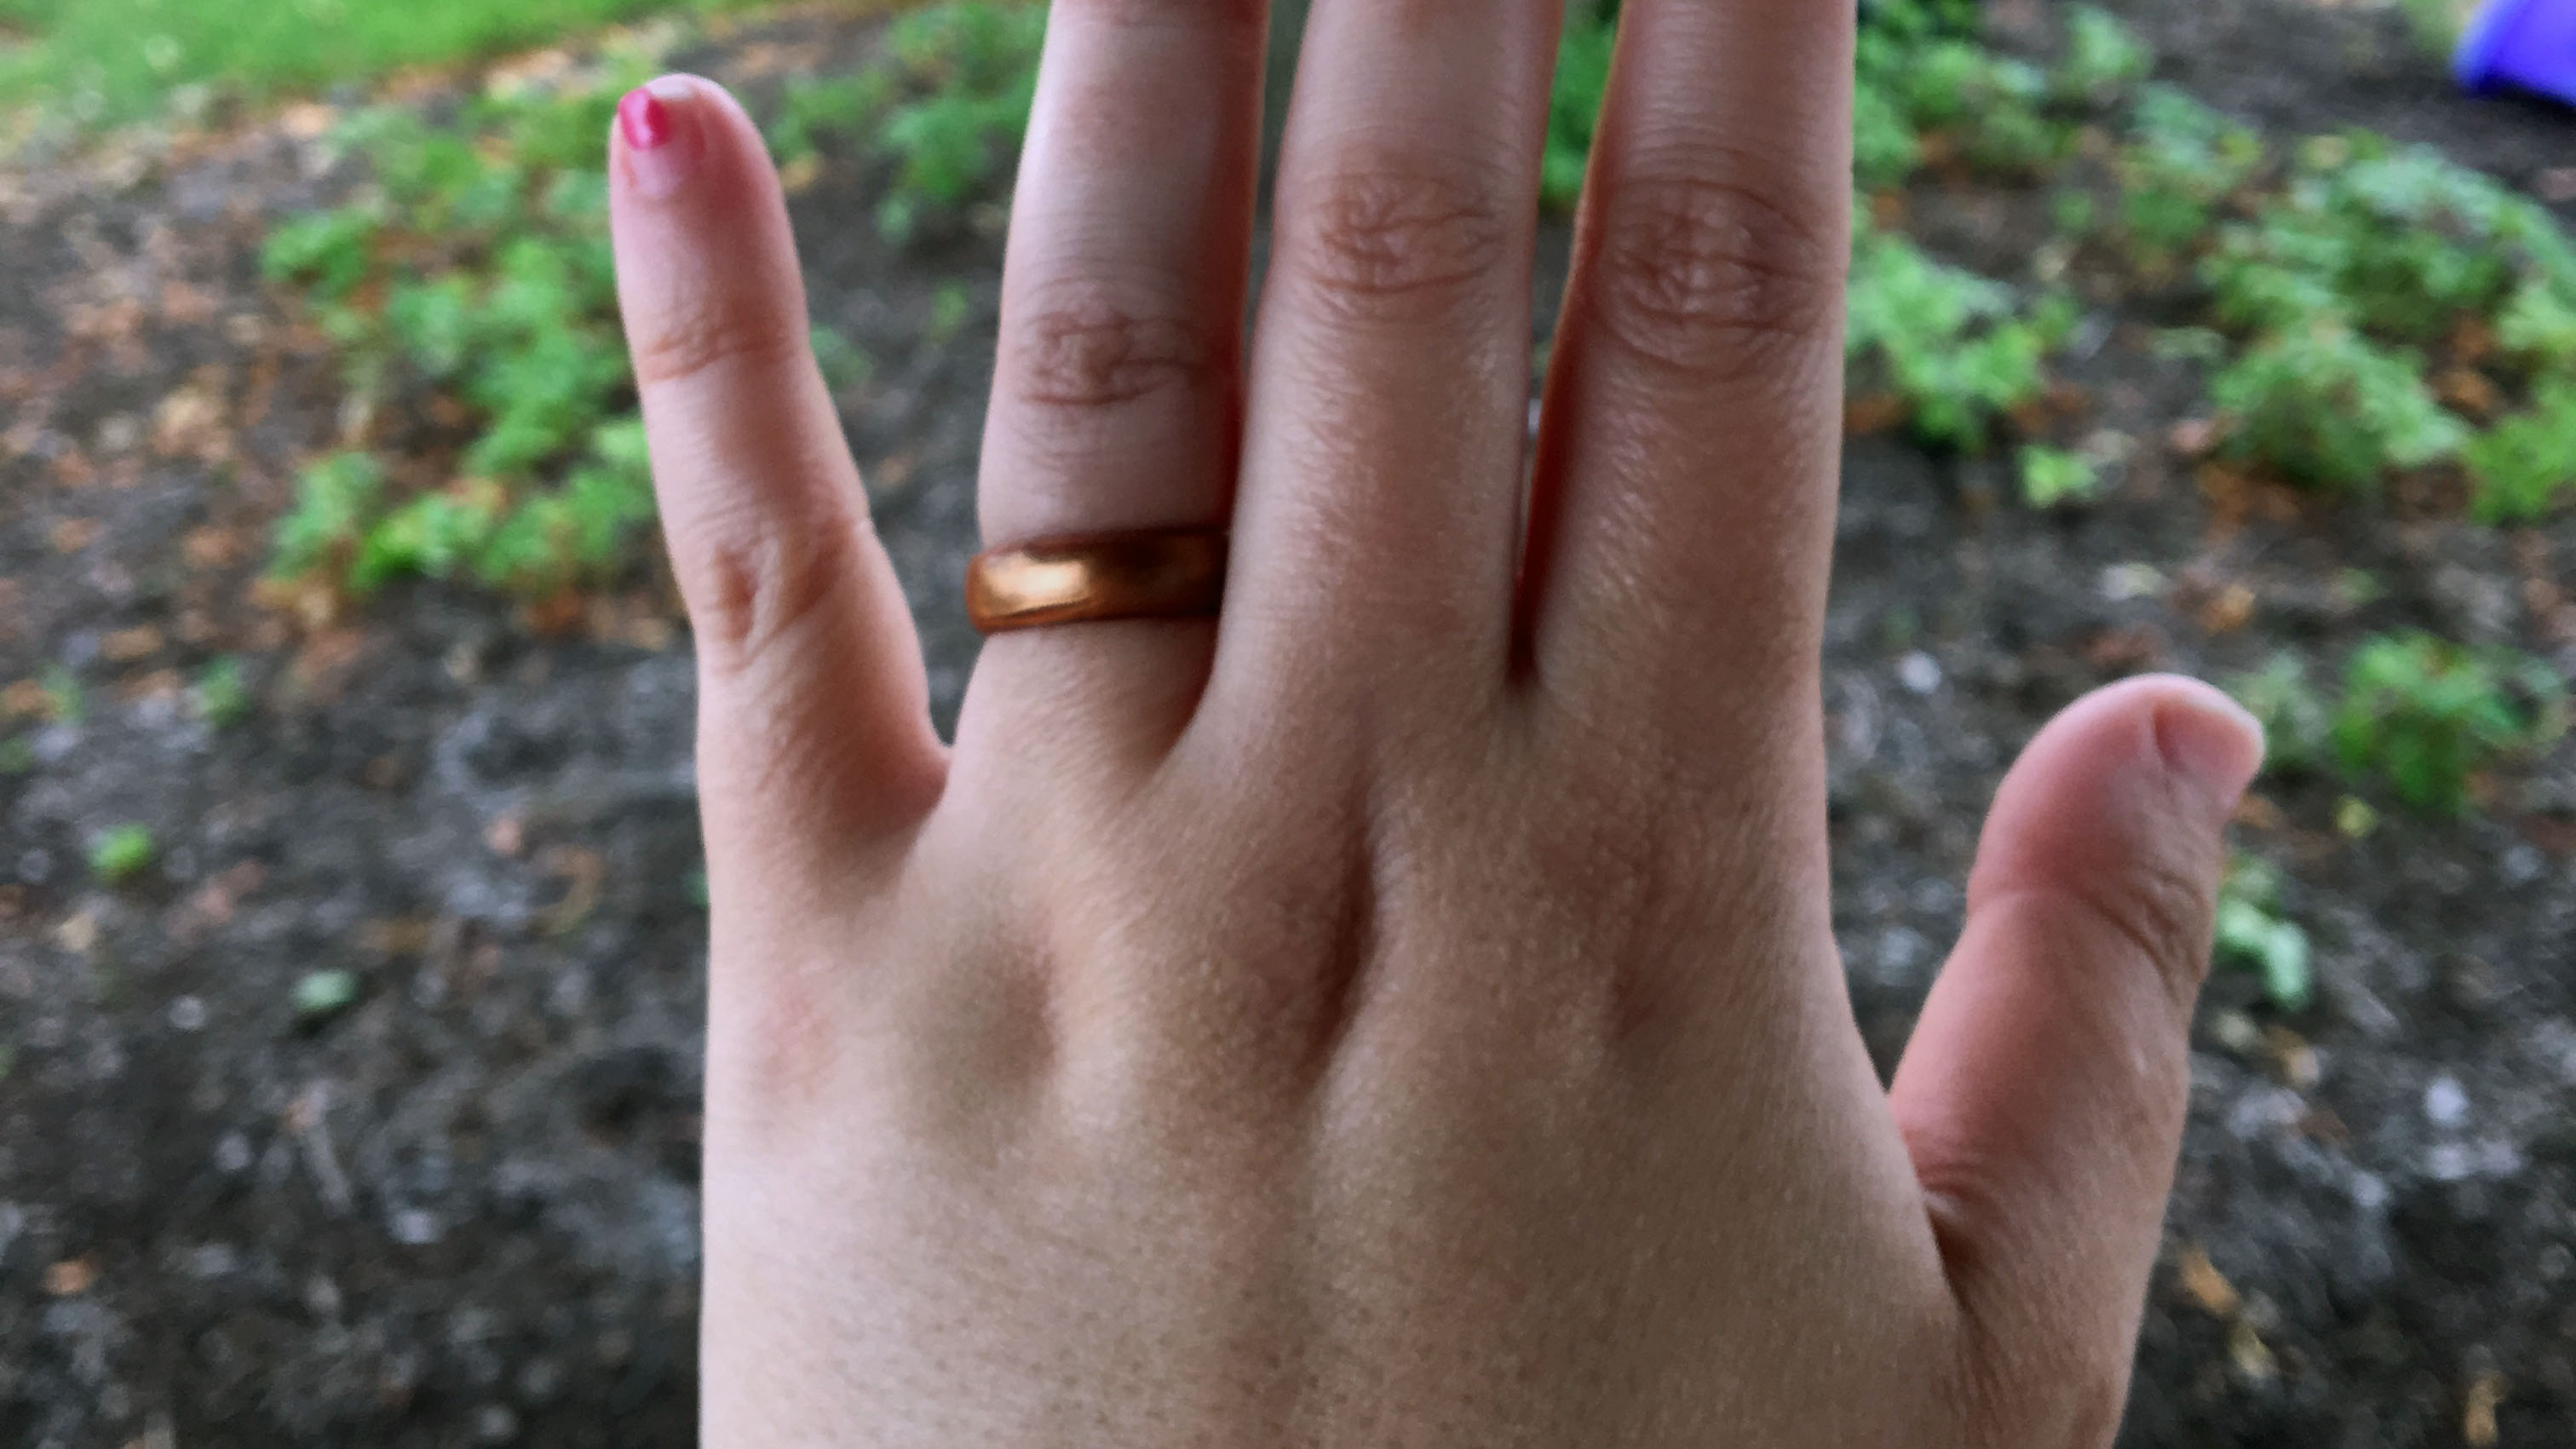 My sister's ring looks surprisingly metallic.